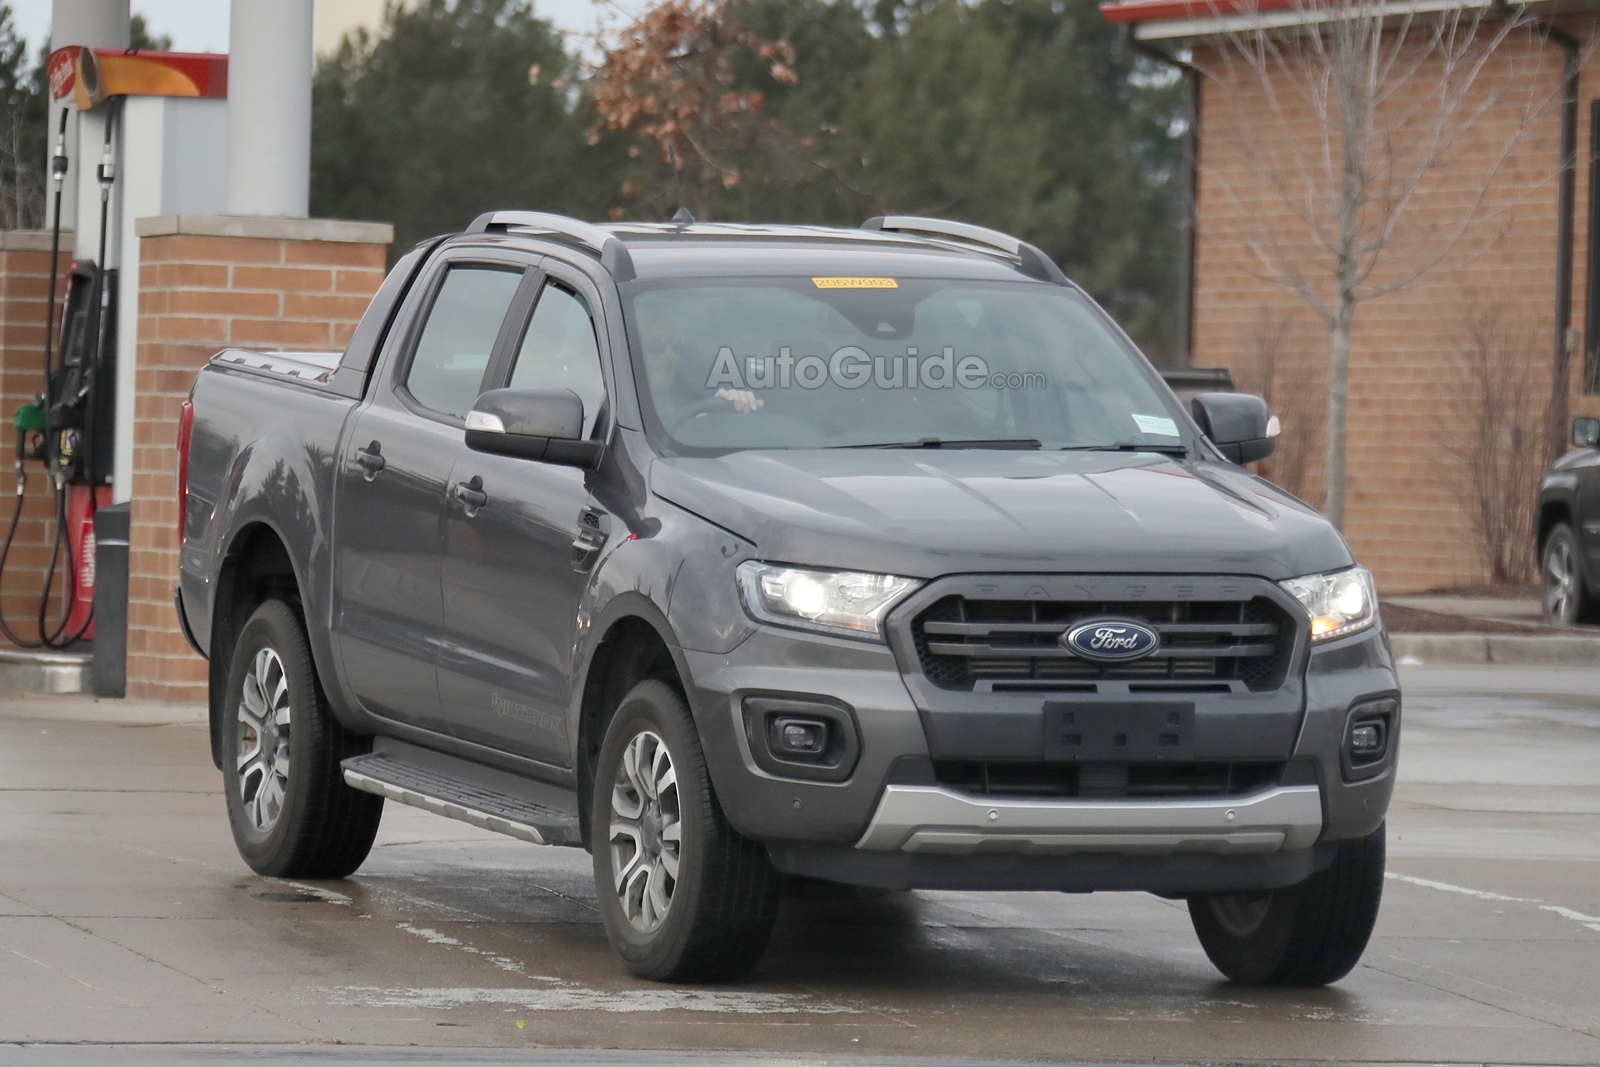 2019 Ford Ranger Wildtrak Spied Inside And Out 187 Autoguide